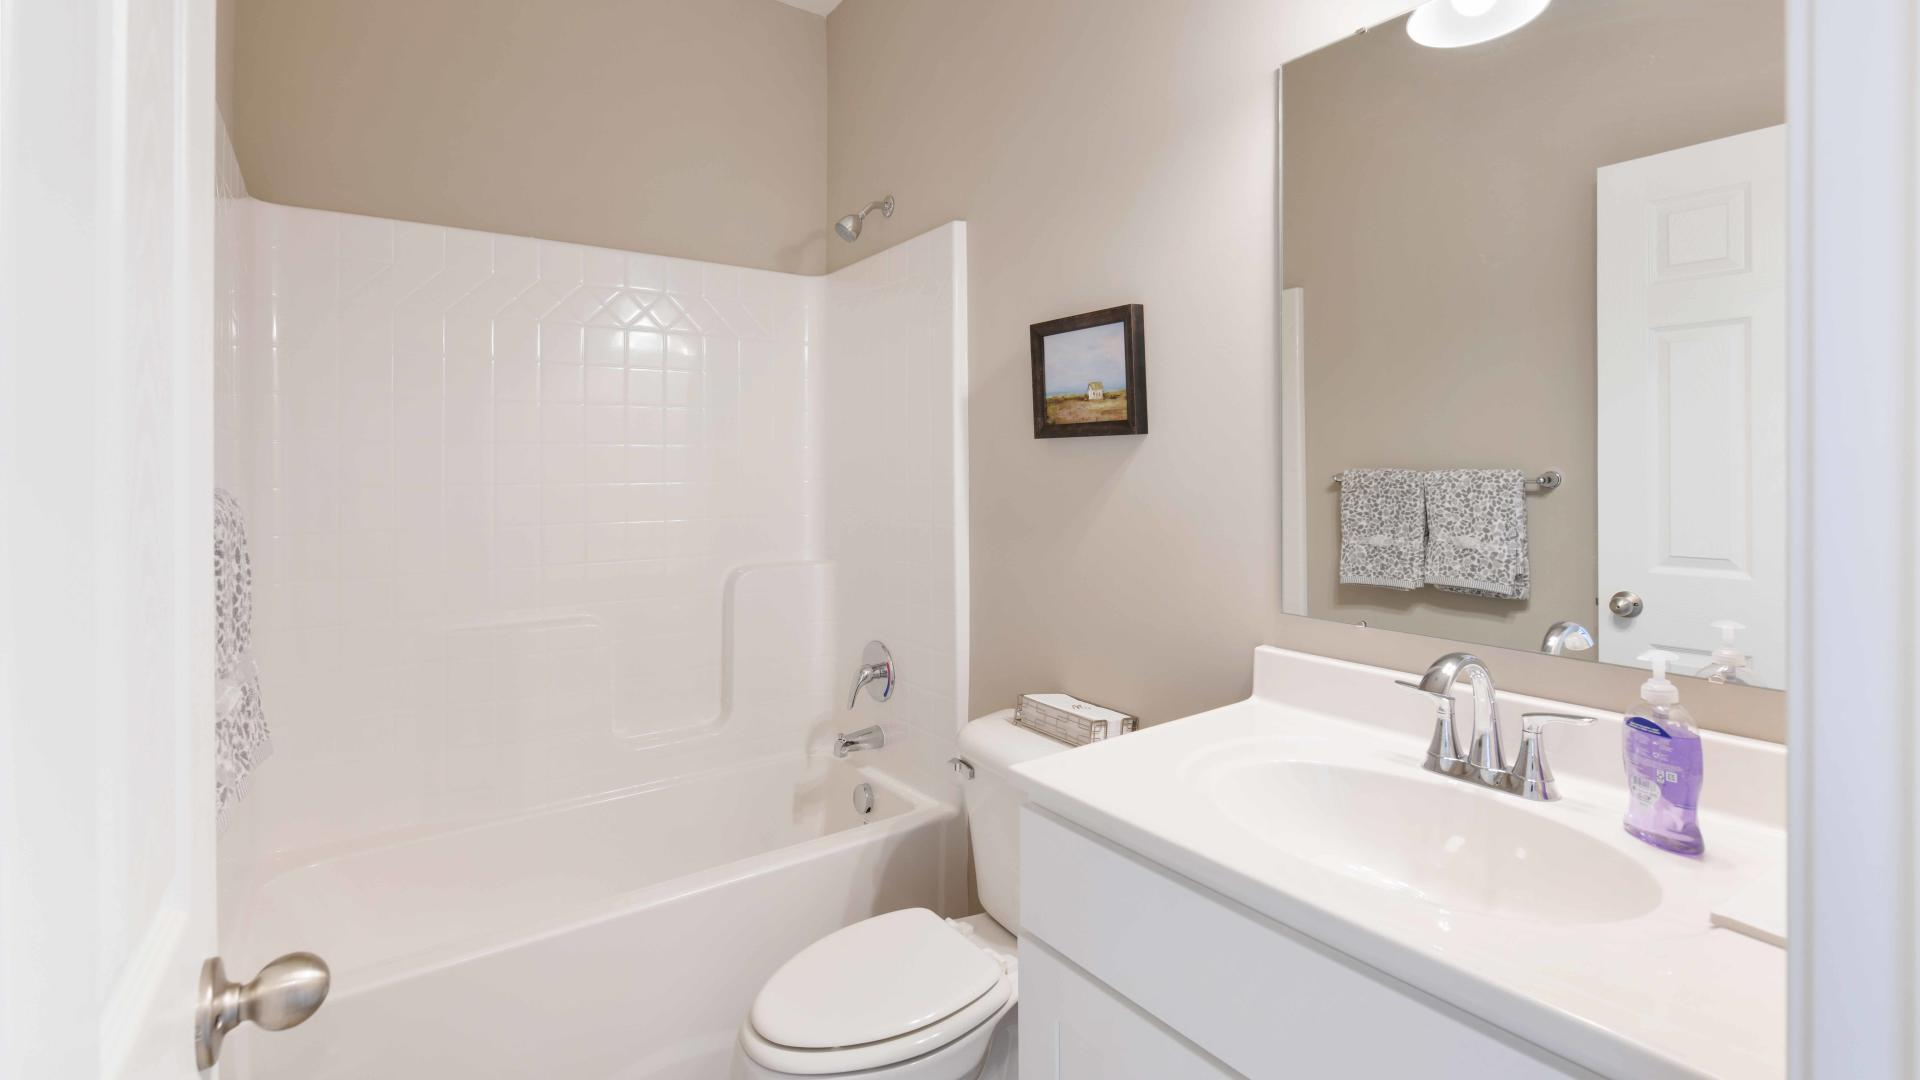 Bathroom featured in the Avalon By Maronda Homes in Pittsburgh, PA